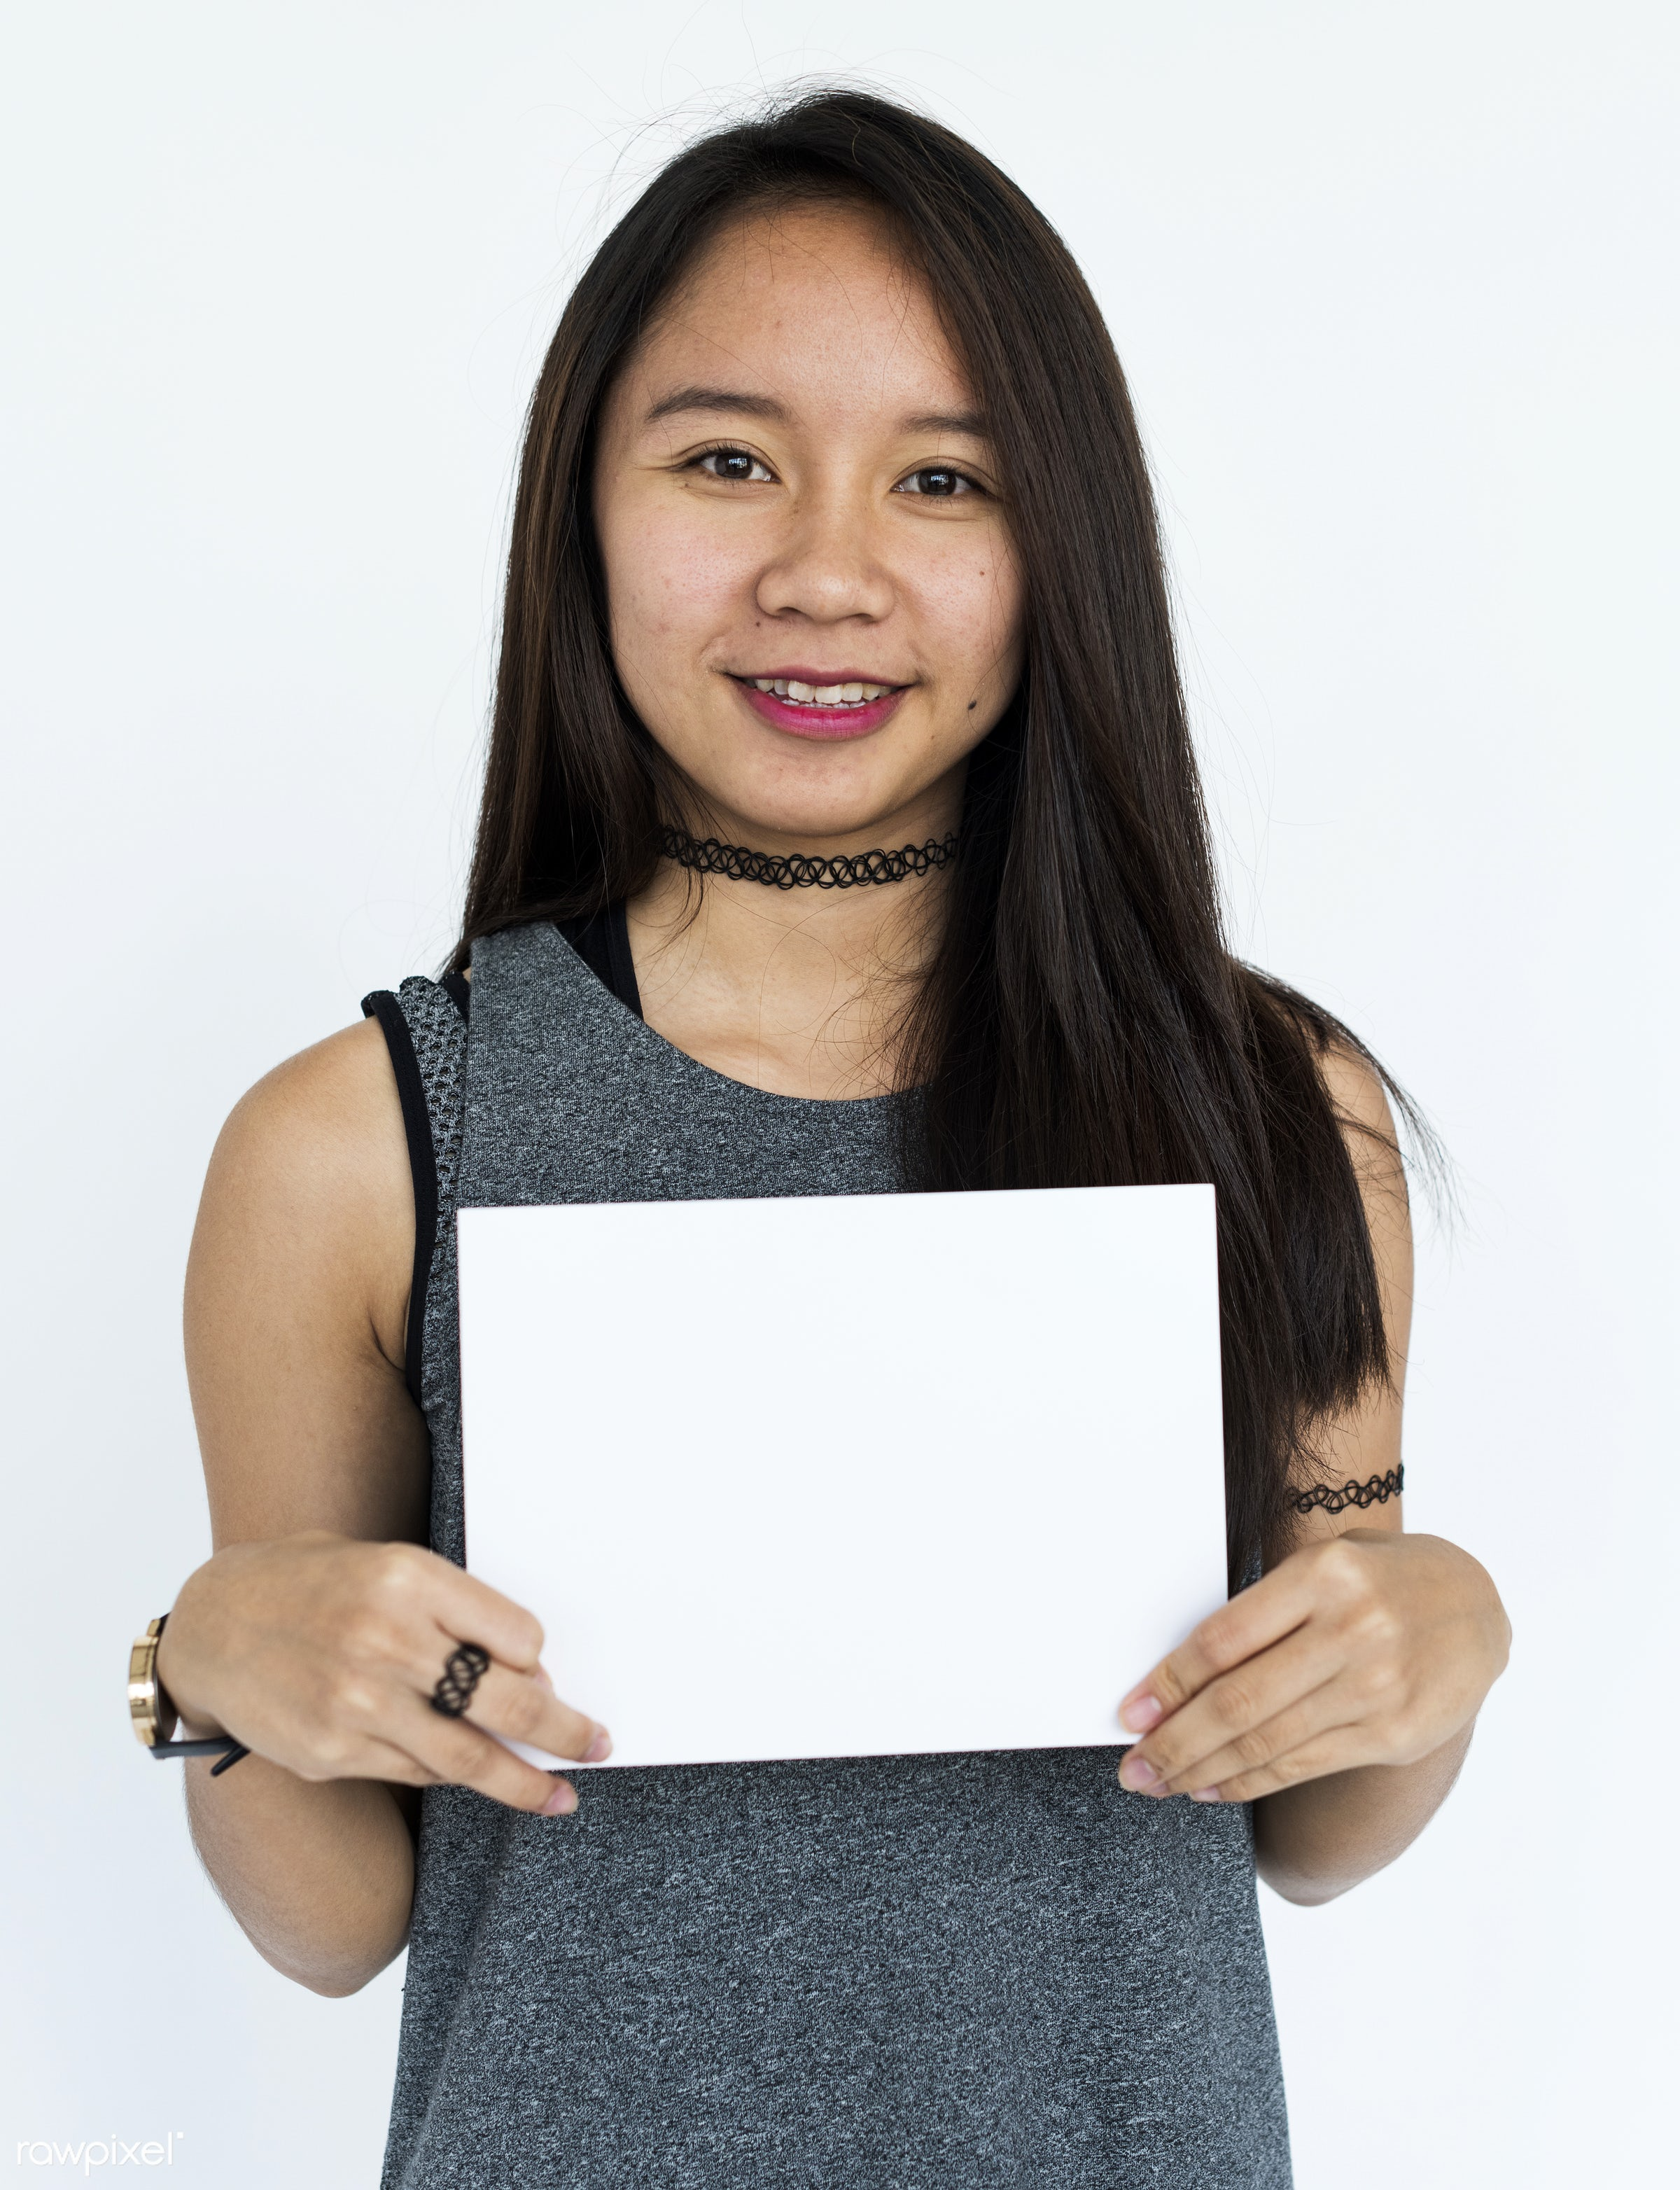 studio, person, holding, show, people, displaying, placard, woman, empty, positive, smile, cheerful, smiling, copy, isolated...